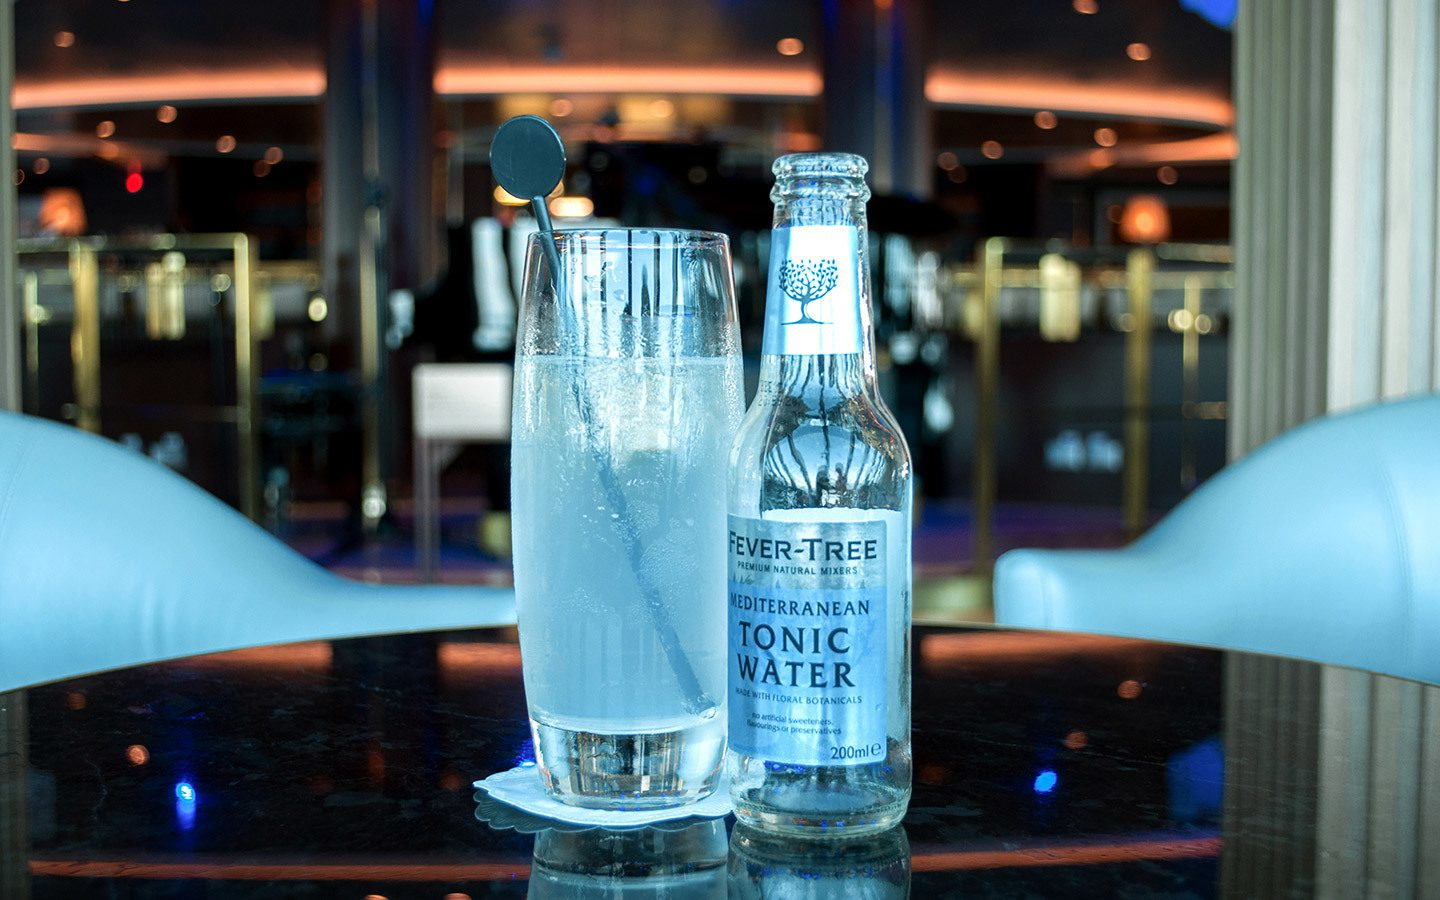 Gin and tonic in the Crow's Nest bar on board P&O Britannia